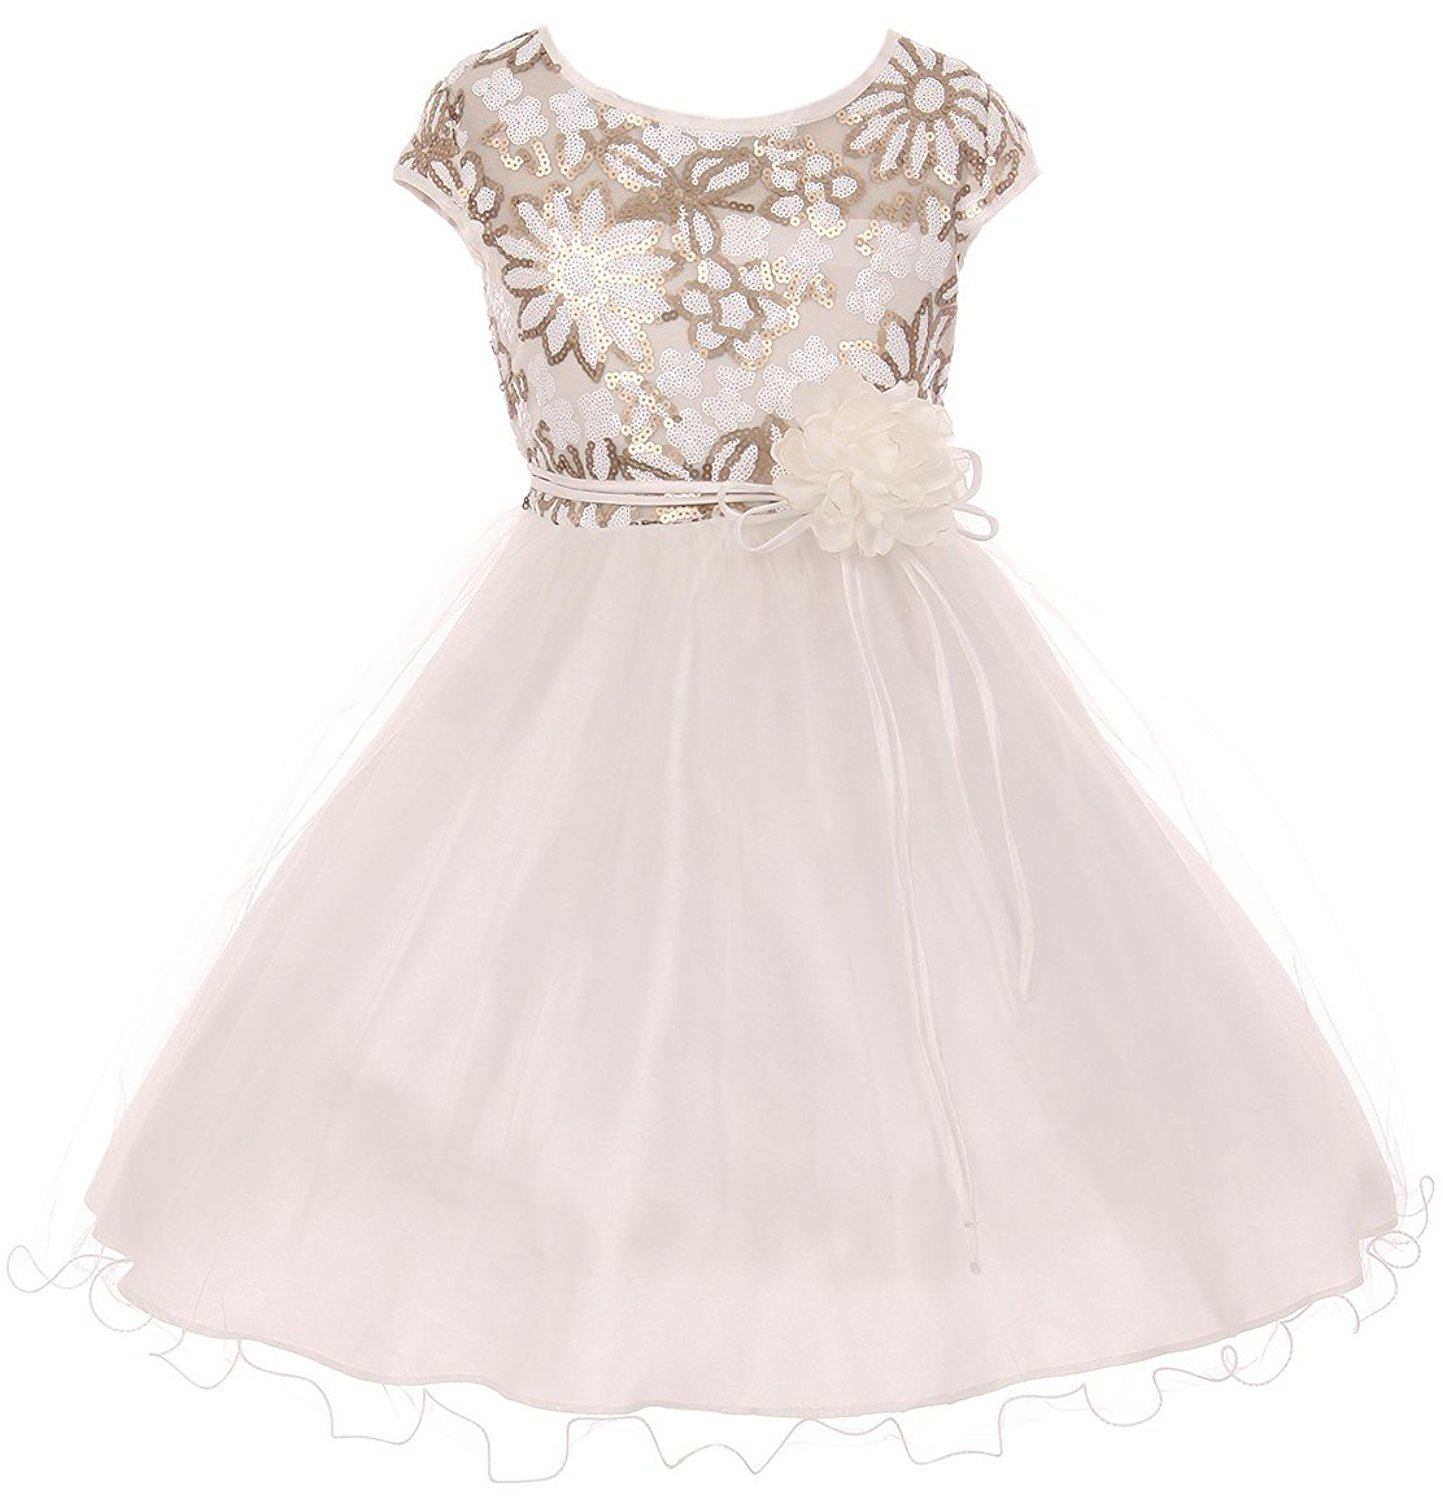 faee9e2c27c Get Quotations · Dreamer P Cap Sleeve Flower Shaped Sequin Top Tulle  Special Occasion Flower Girl Dress